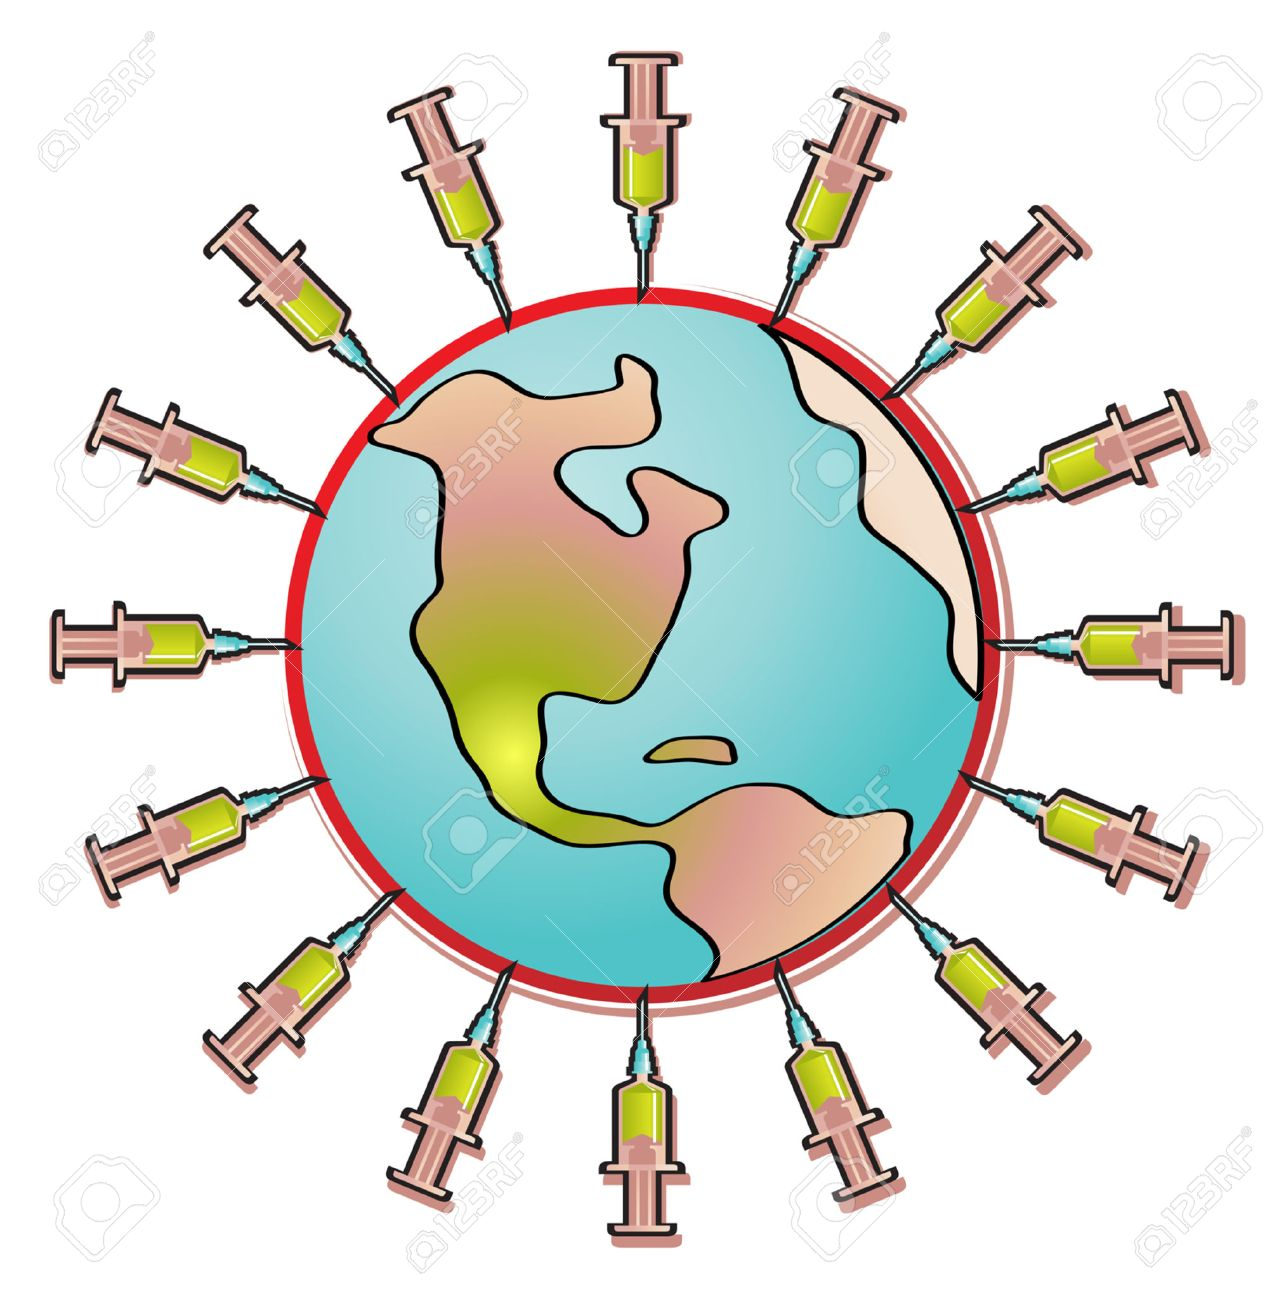 Vector illustration of influenza virus in the shape of planet earth surrounded by vaccine syringes Stock Vector - 4892897